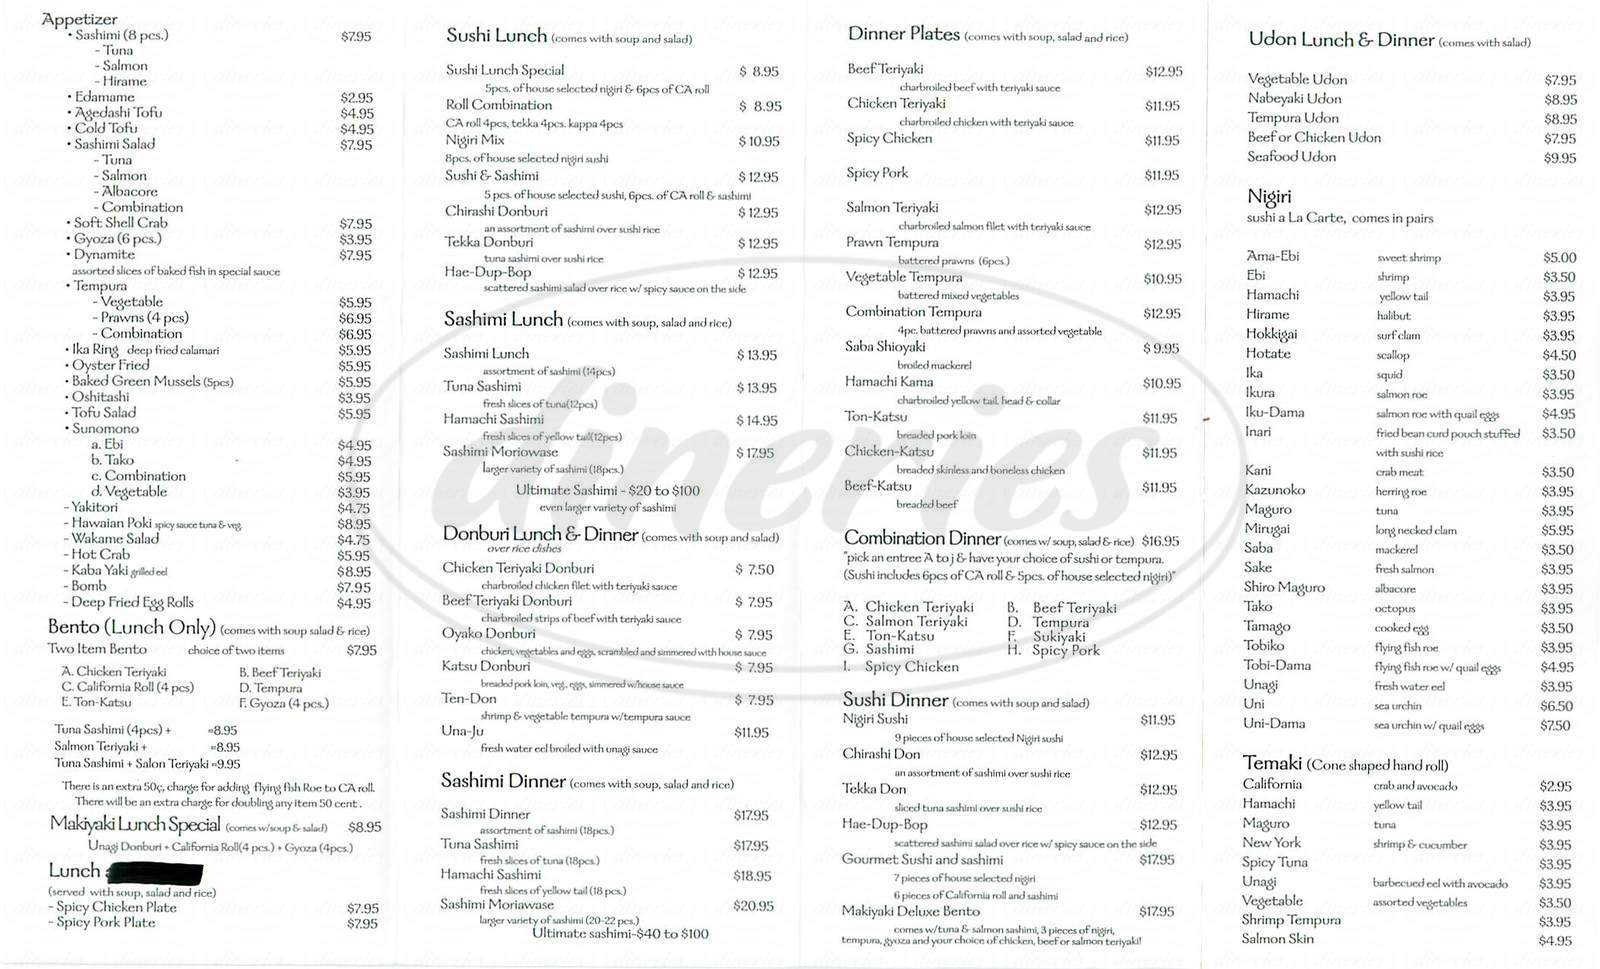 menu for Makiyaki